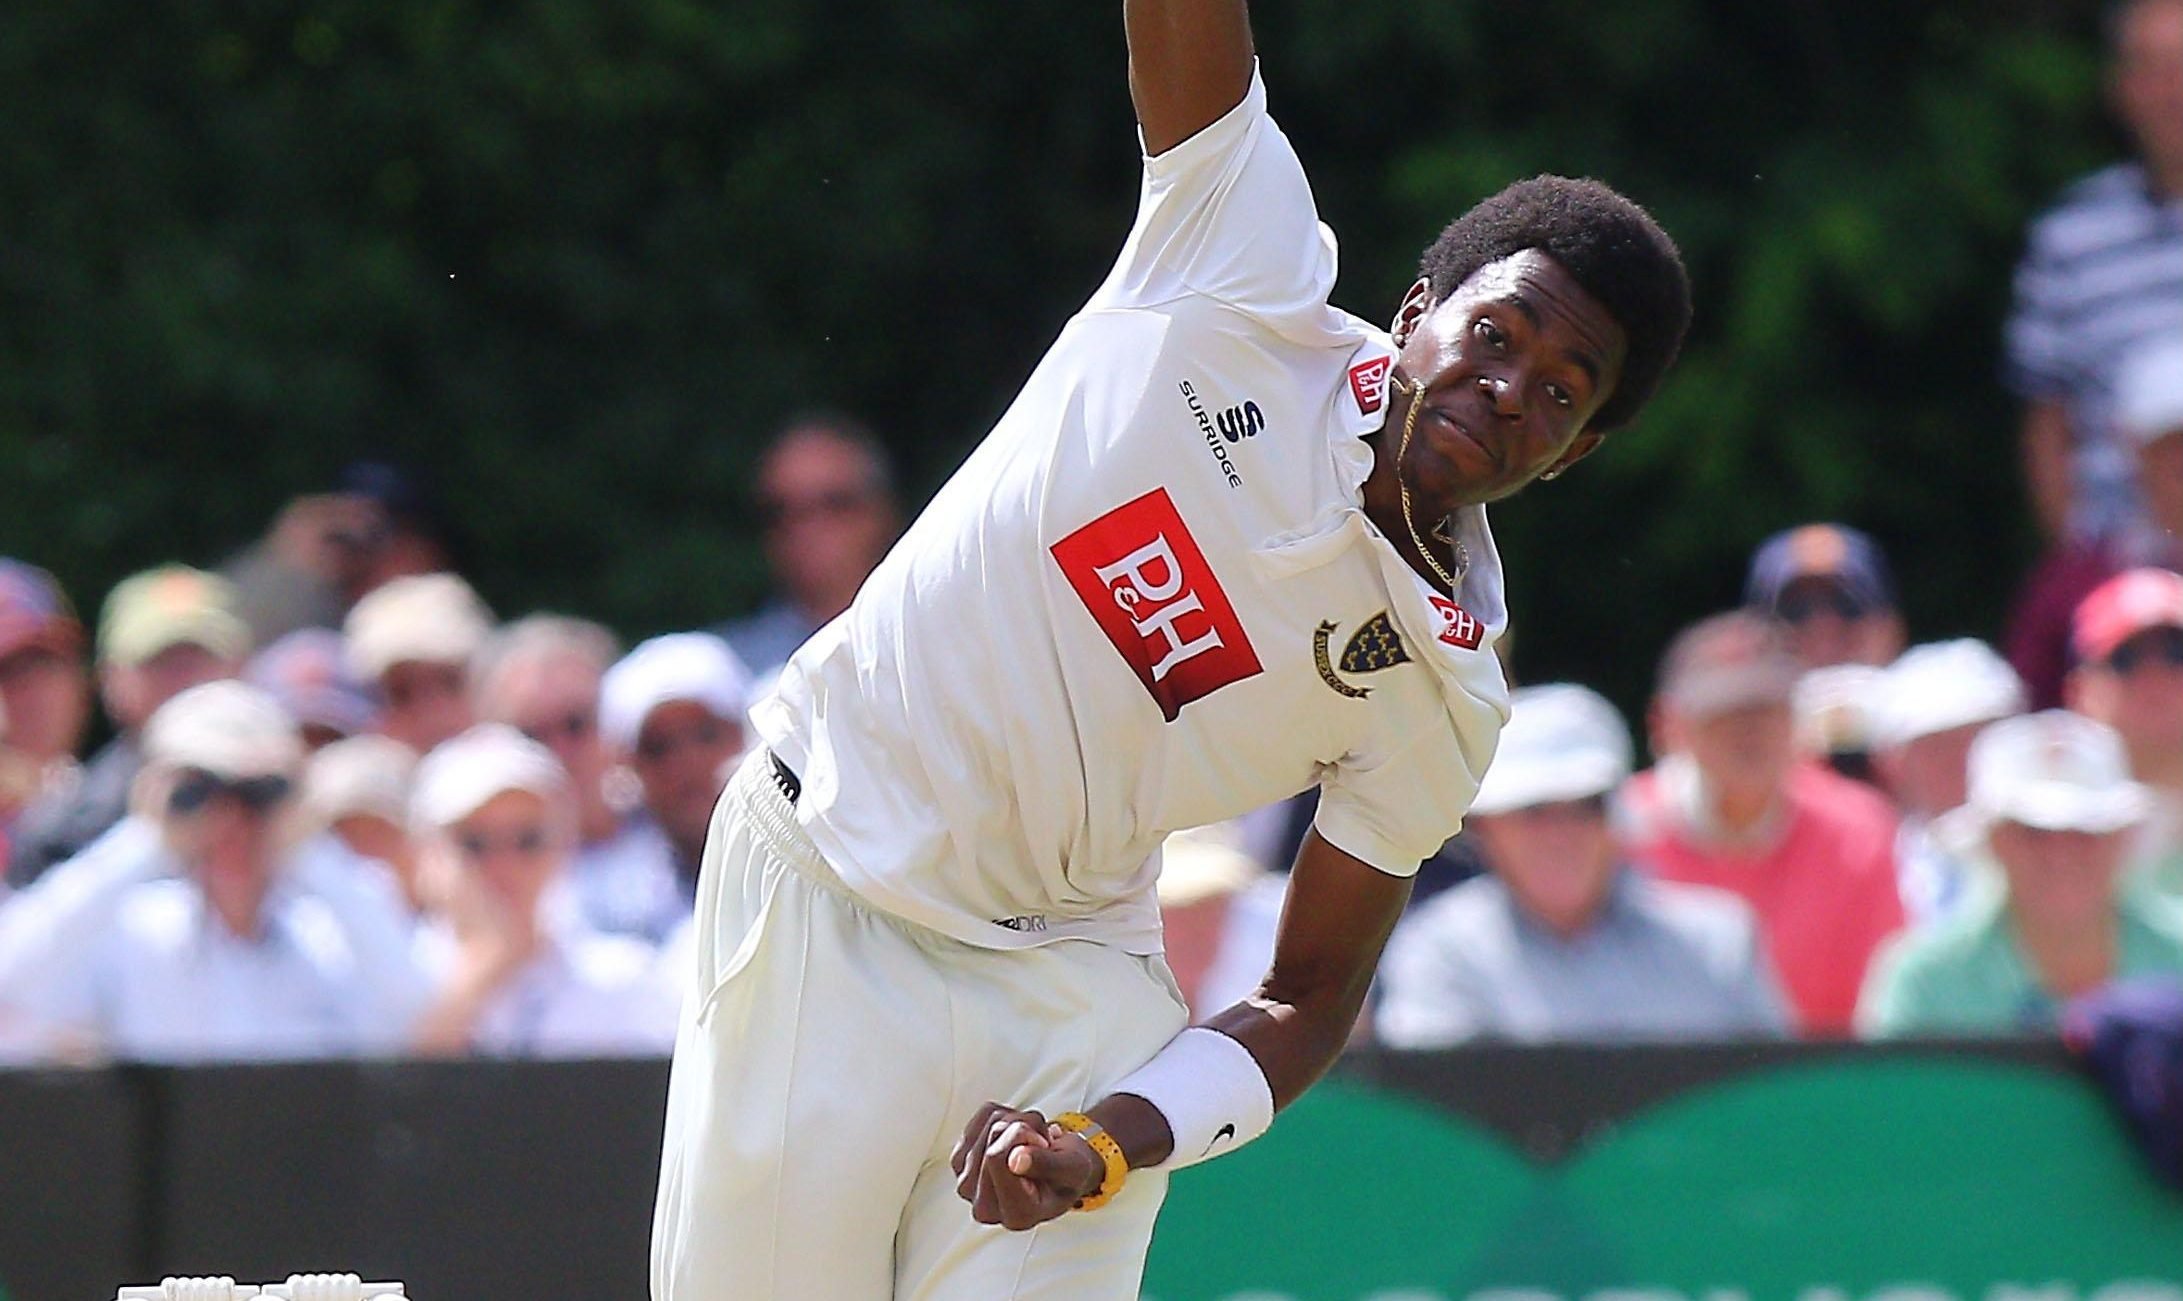 The 23-year-old has already played 28 first-class games for Sussex